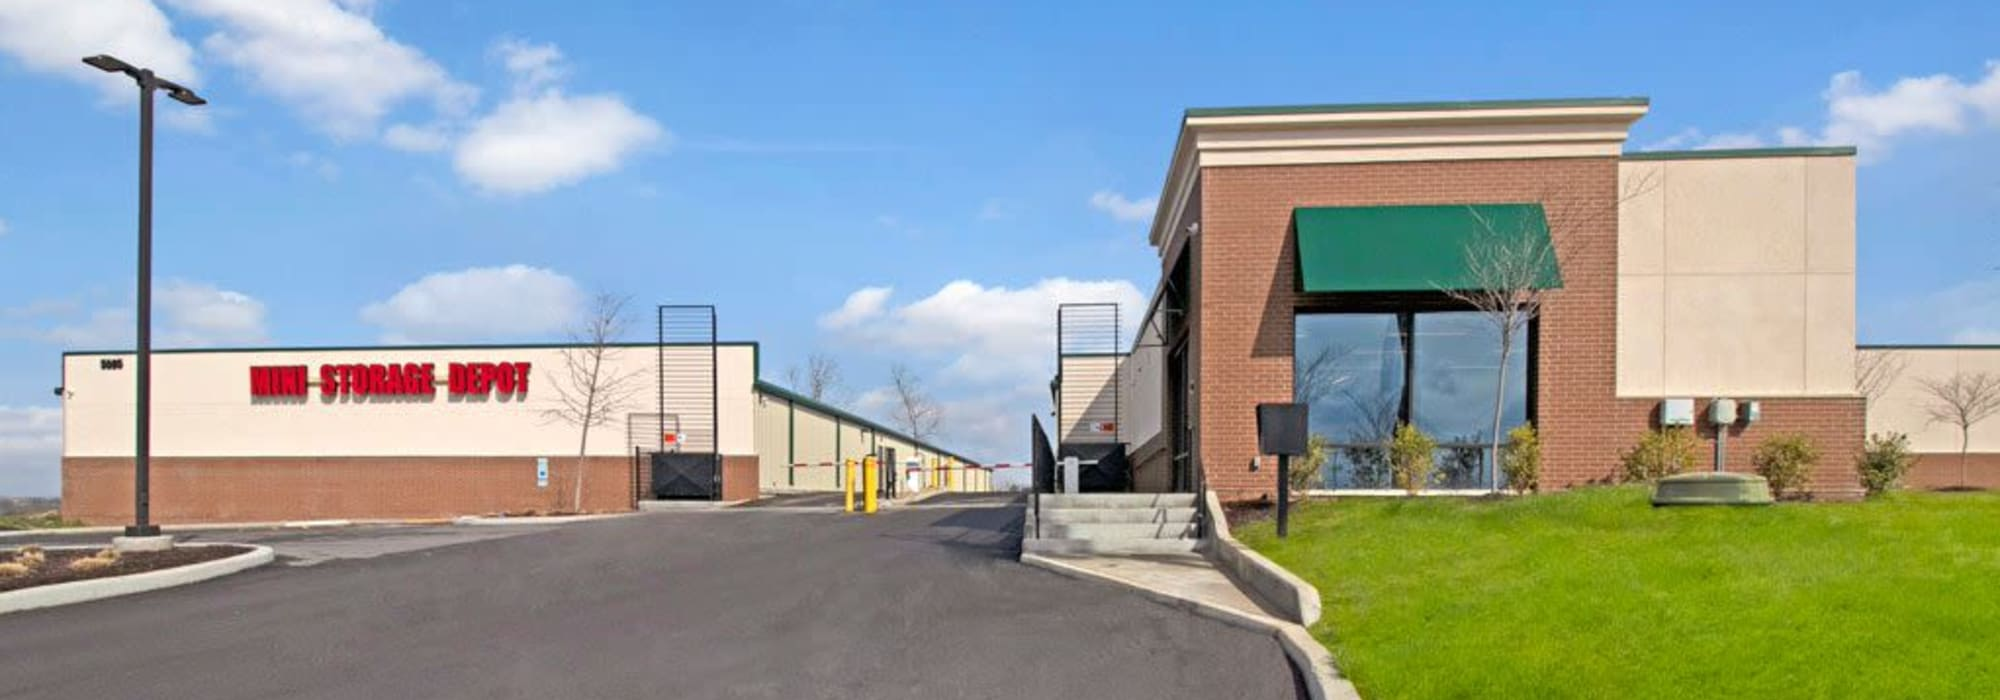 Welcome to Mini Storage Depot in La Vergne, Tennessee